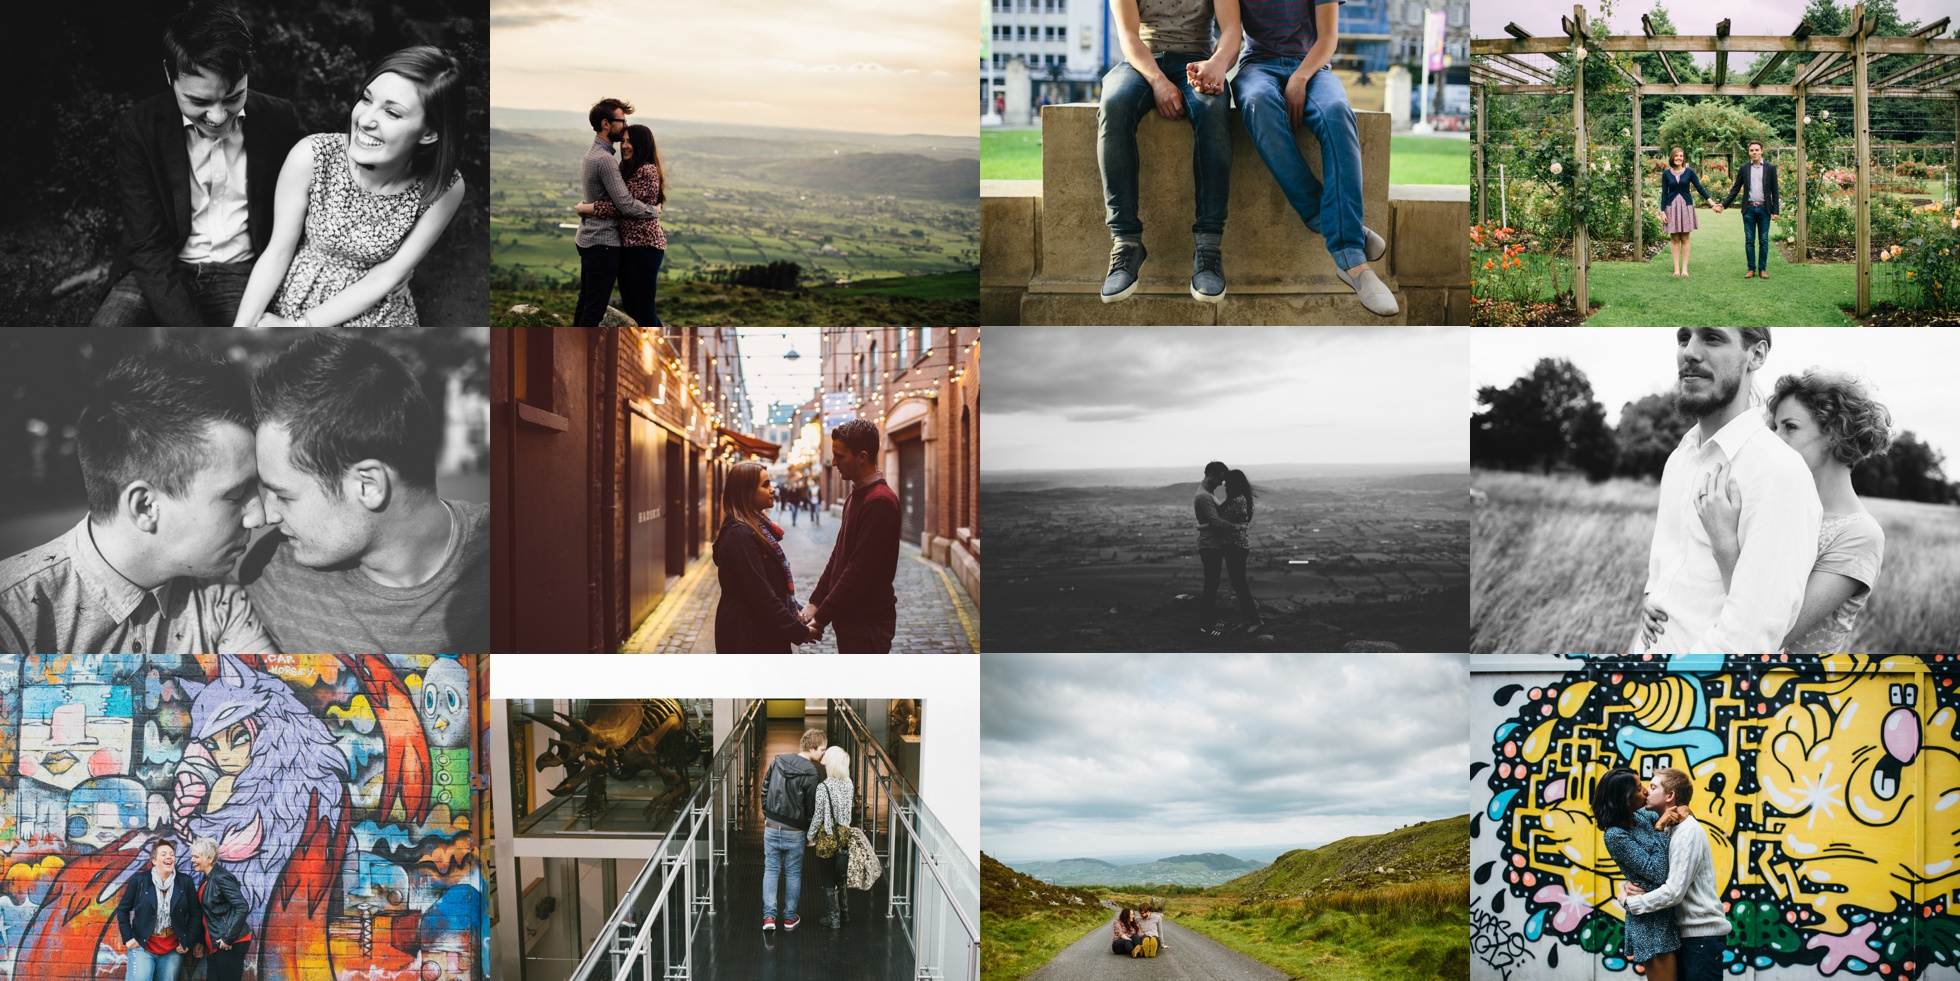 engagement photography couples photoshoots northern ireland packages prices information